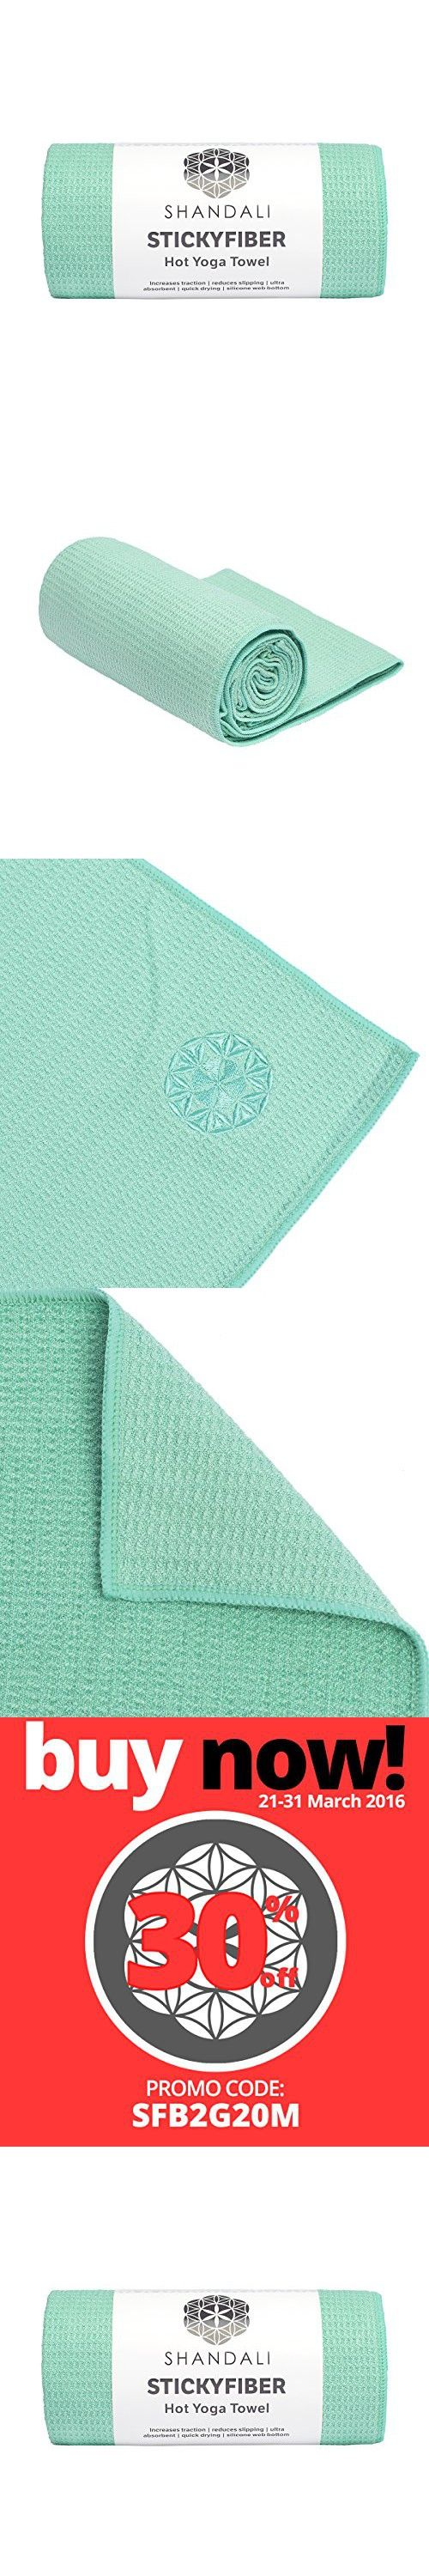 "#1 Rated Hot Yoga Towel - Shandali Stickyfiber Yoga Towel - Mat-Sized, Microfiber, Super Absorbent, Anti-slip, Injury Free, 24"" x 72"" - Best Bikram Yoga Towel - Exercise, Fitness, Pilates, and Yoga Gear; Lifetime Guarantee (Jade Green, Standard)"